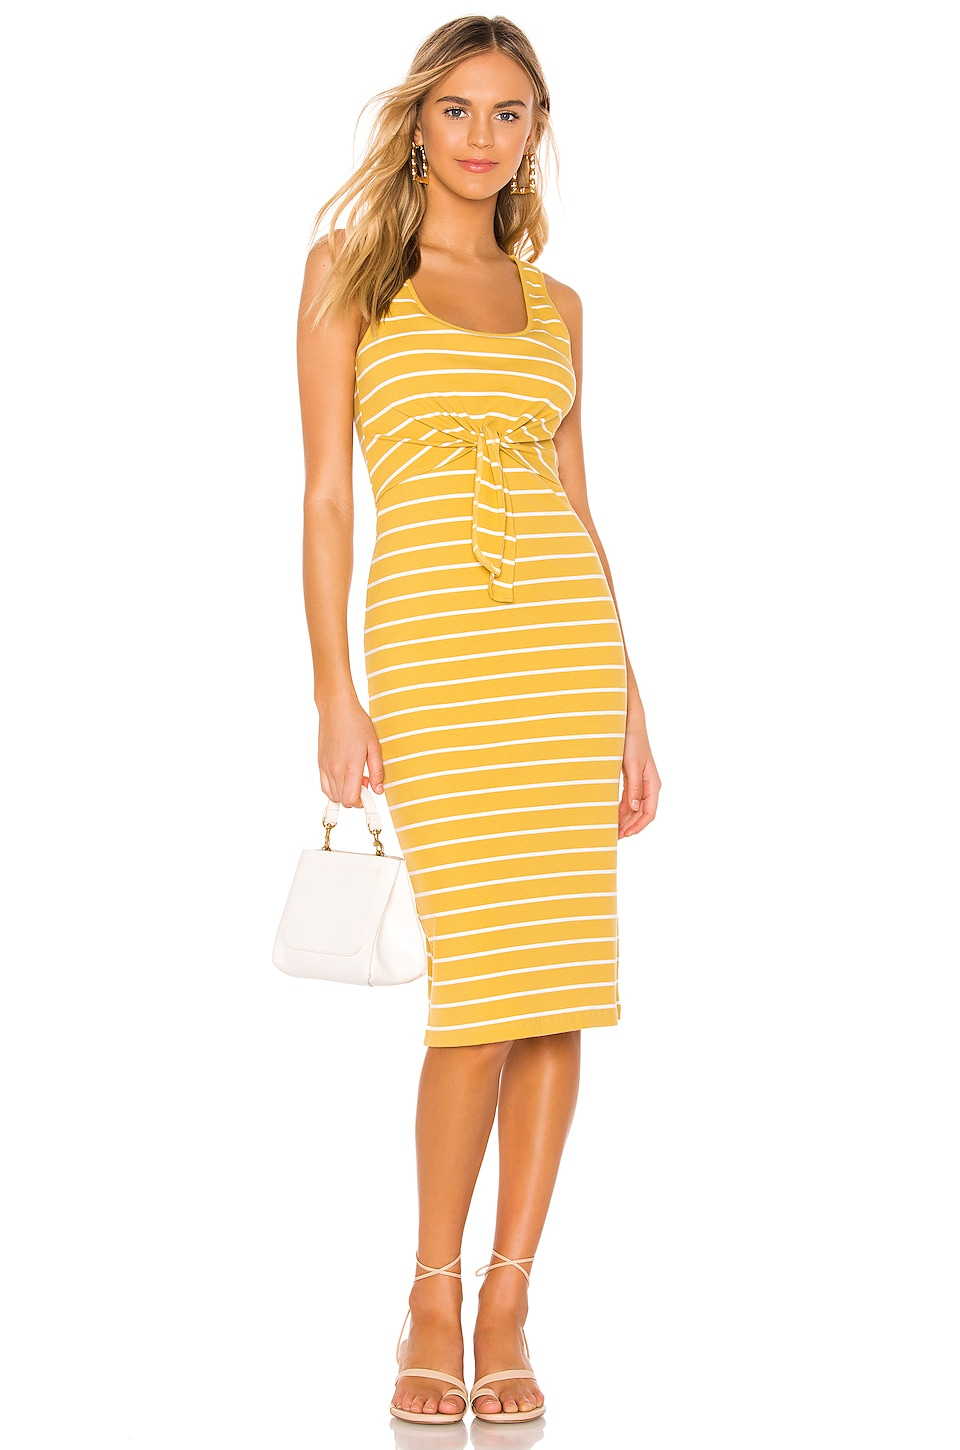 Heartloom HEARTLOOM KENZIE DRESS IN YELLOW.